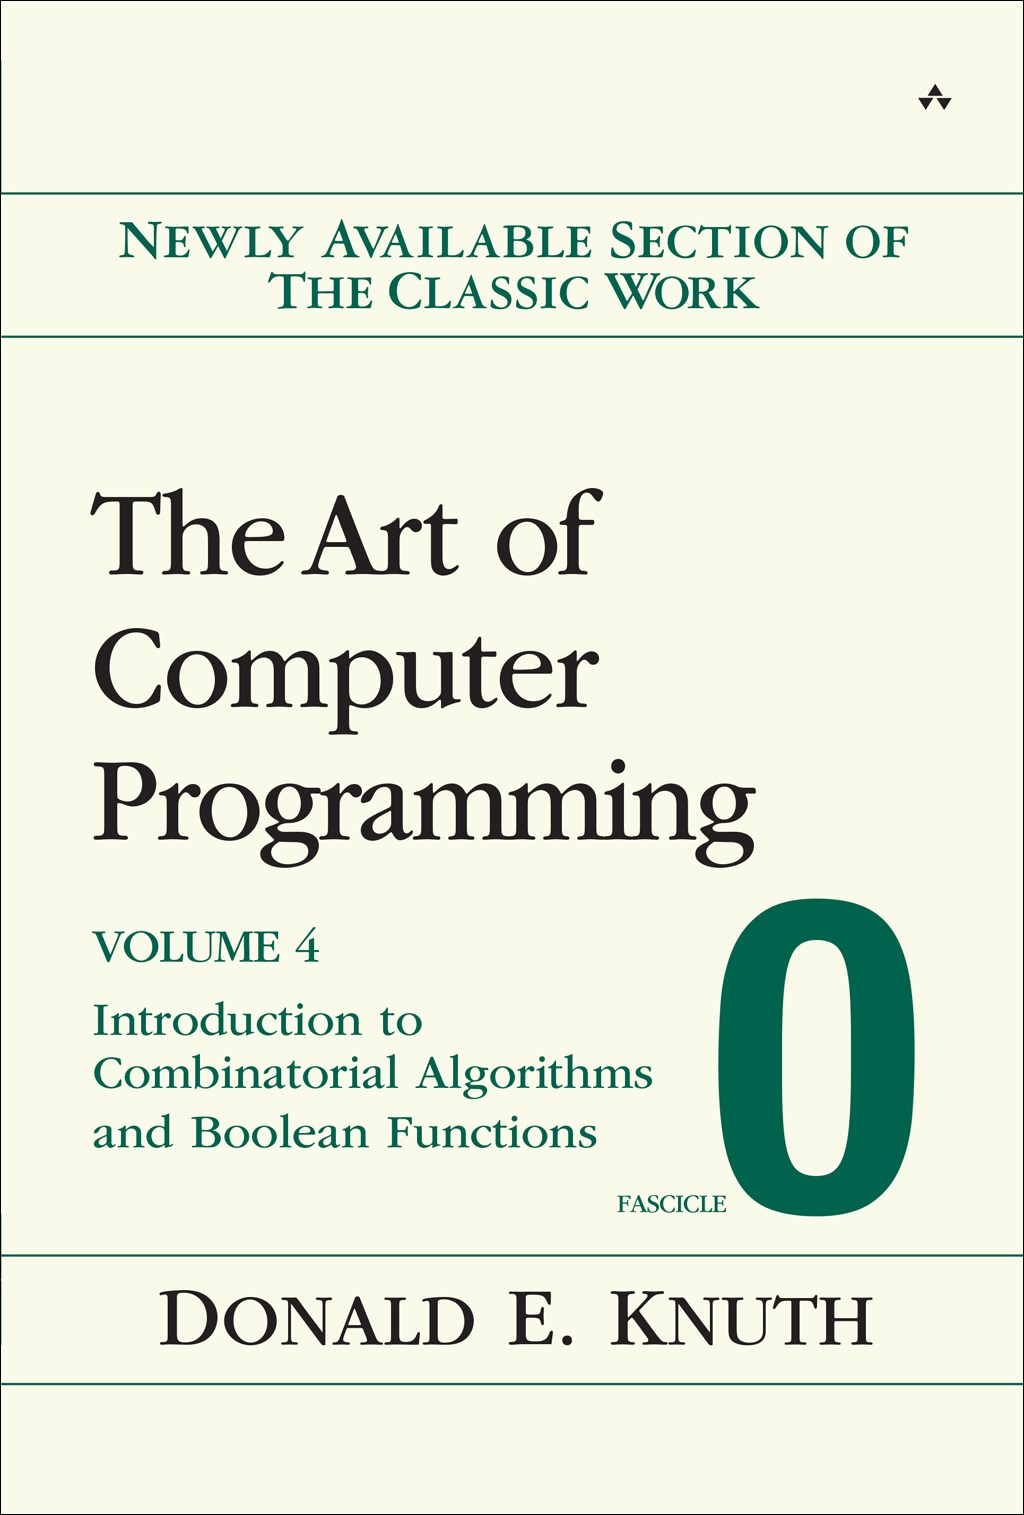 Art of Computer Programming, Volume 4, Fascicle 0, The: Introduction to Combinatorial Algorithms and Boolean Functions